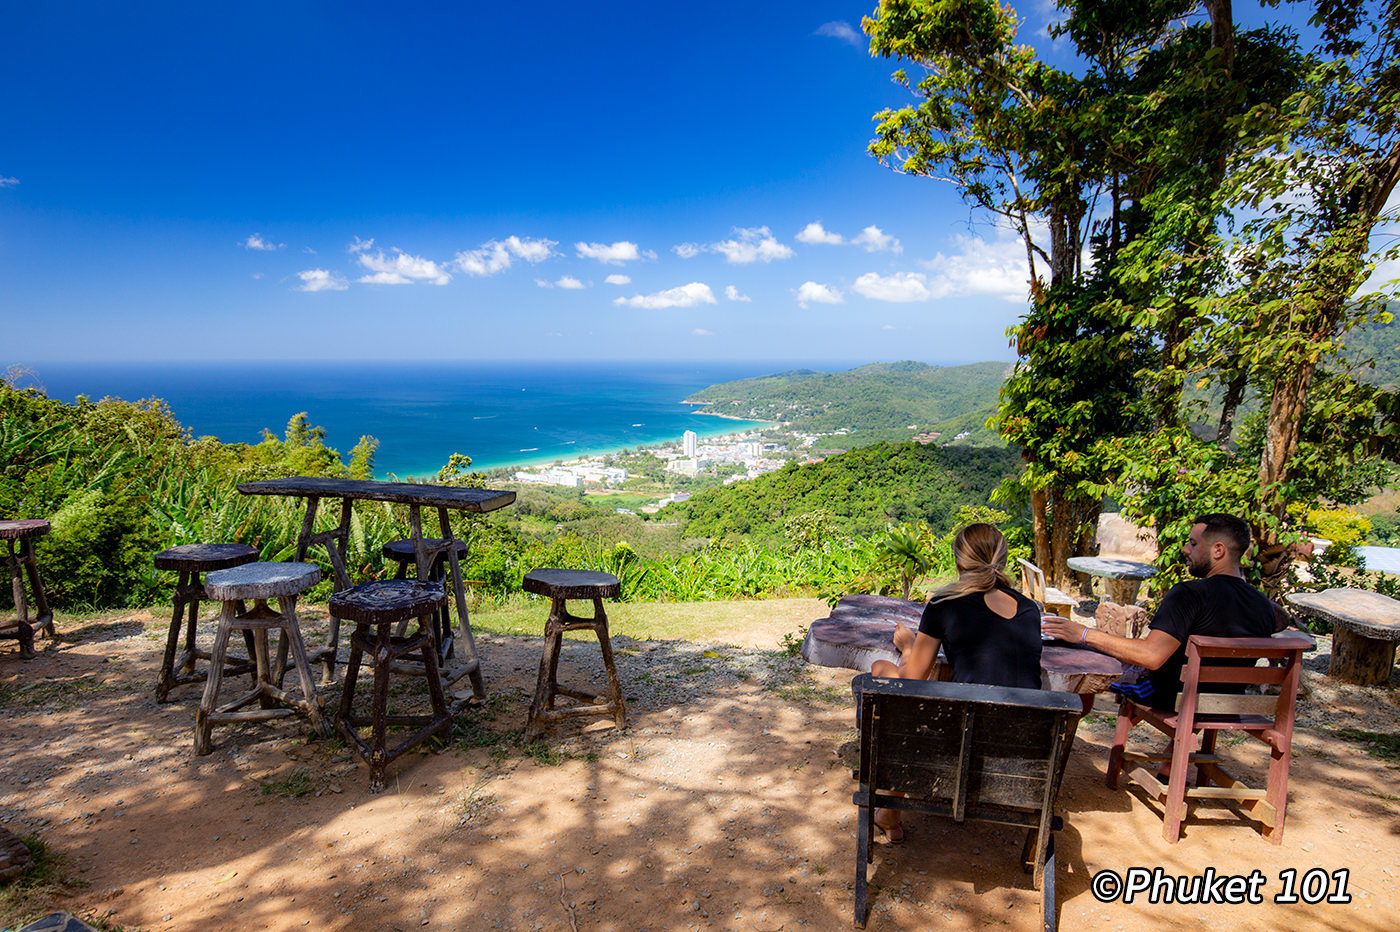 Nakkerd Seaview Cafe at Big Buddha Phuket